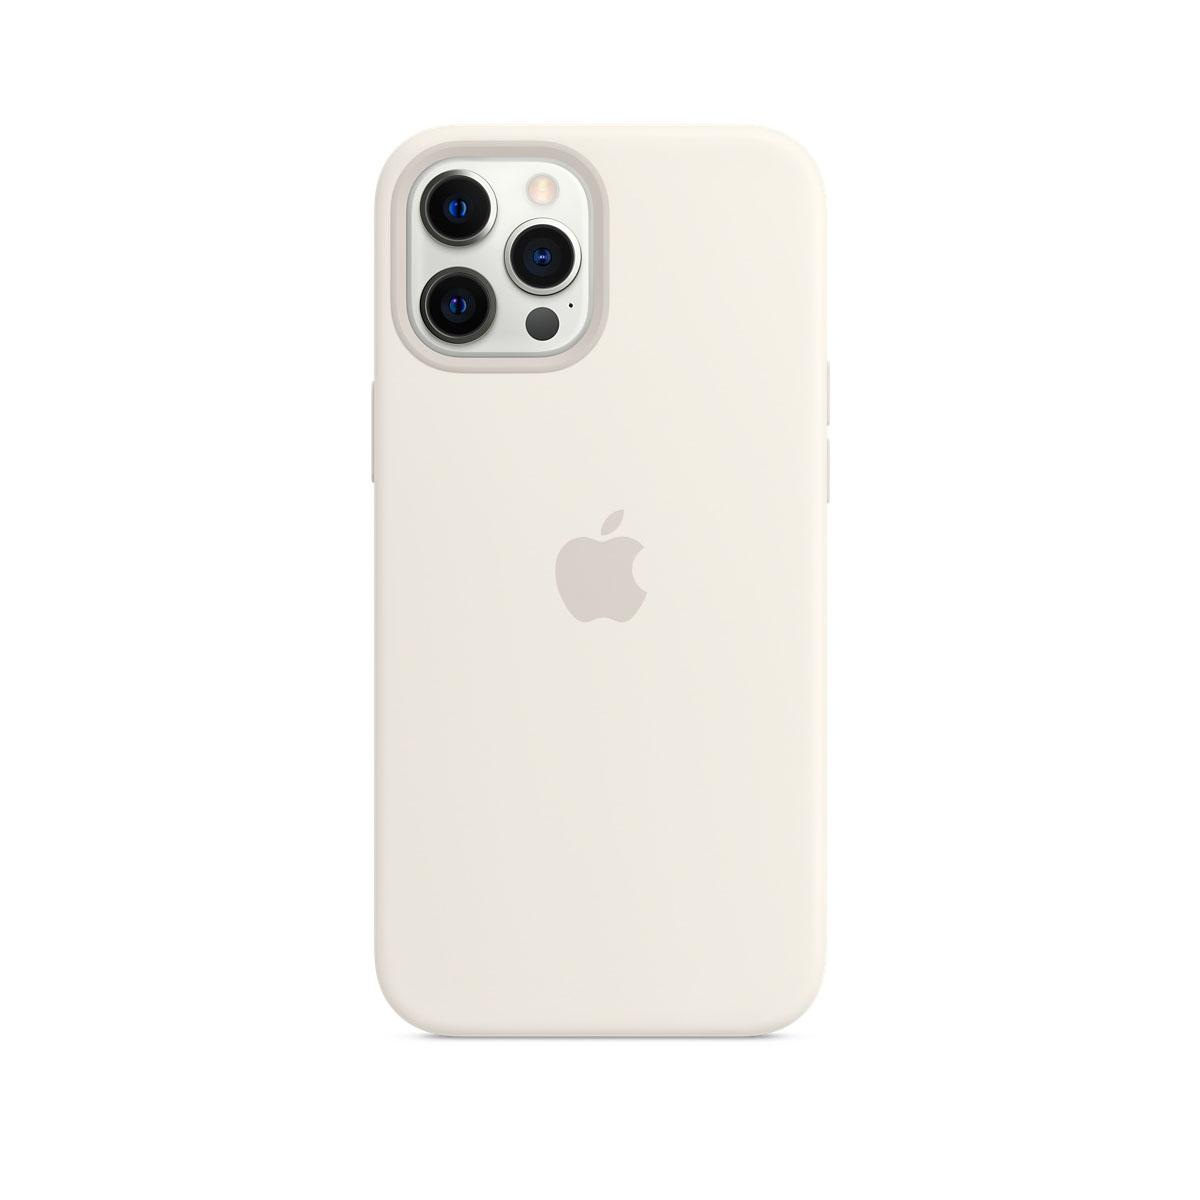 Apple iPhone 12 Pro Max Magsafe Silicone Case White+D344D292:D368